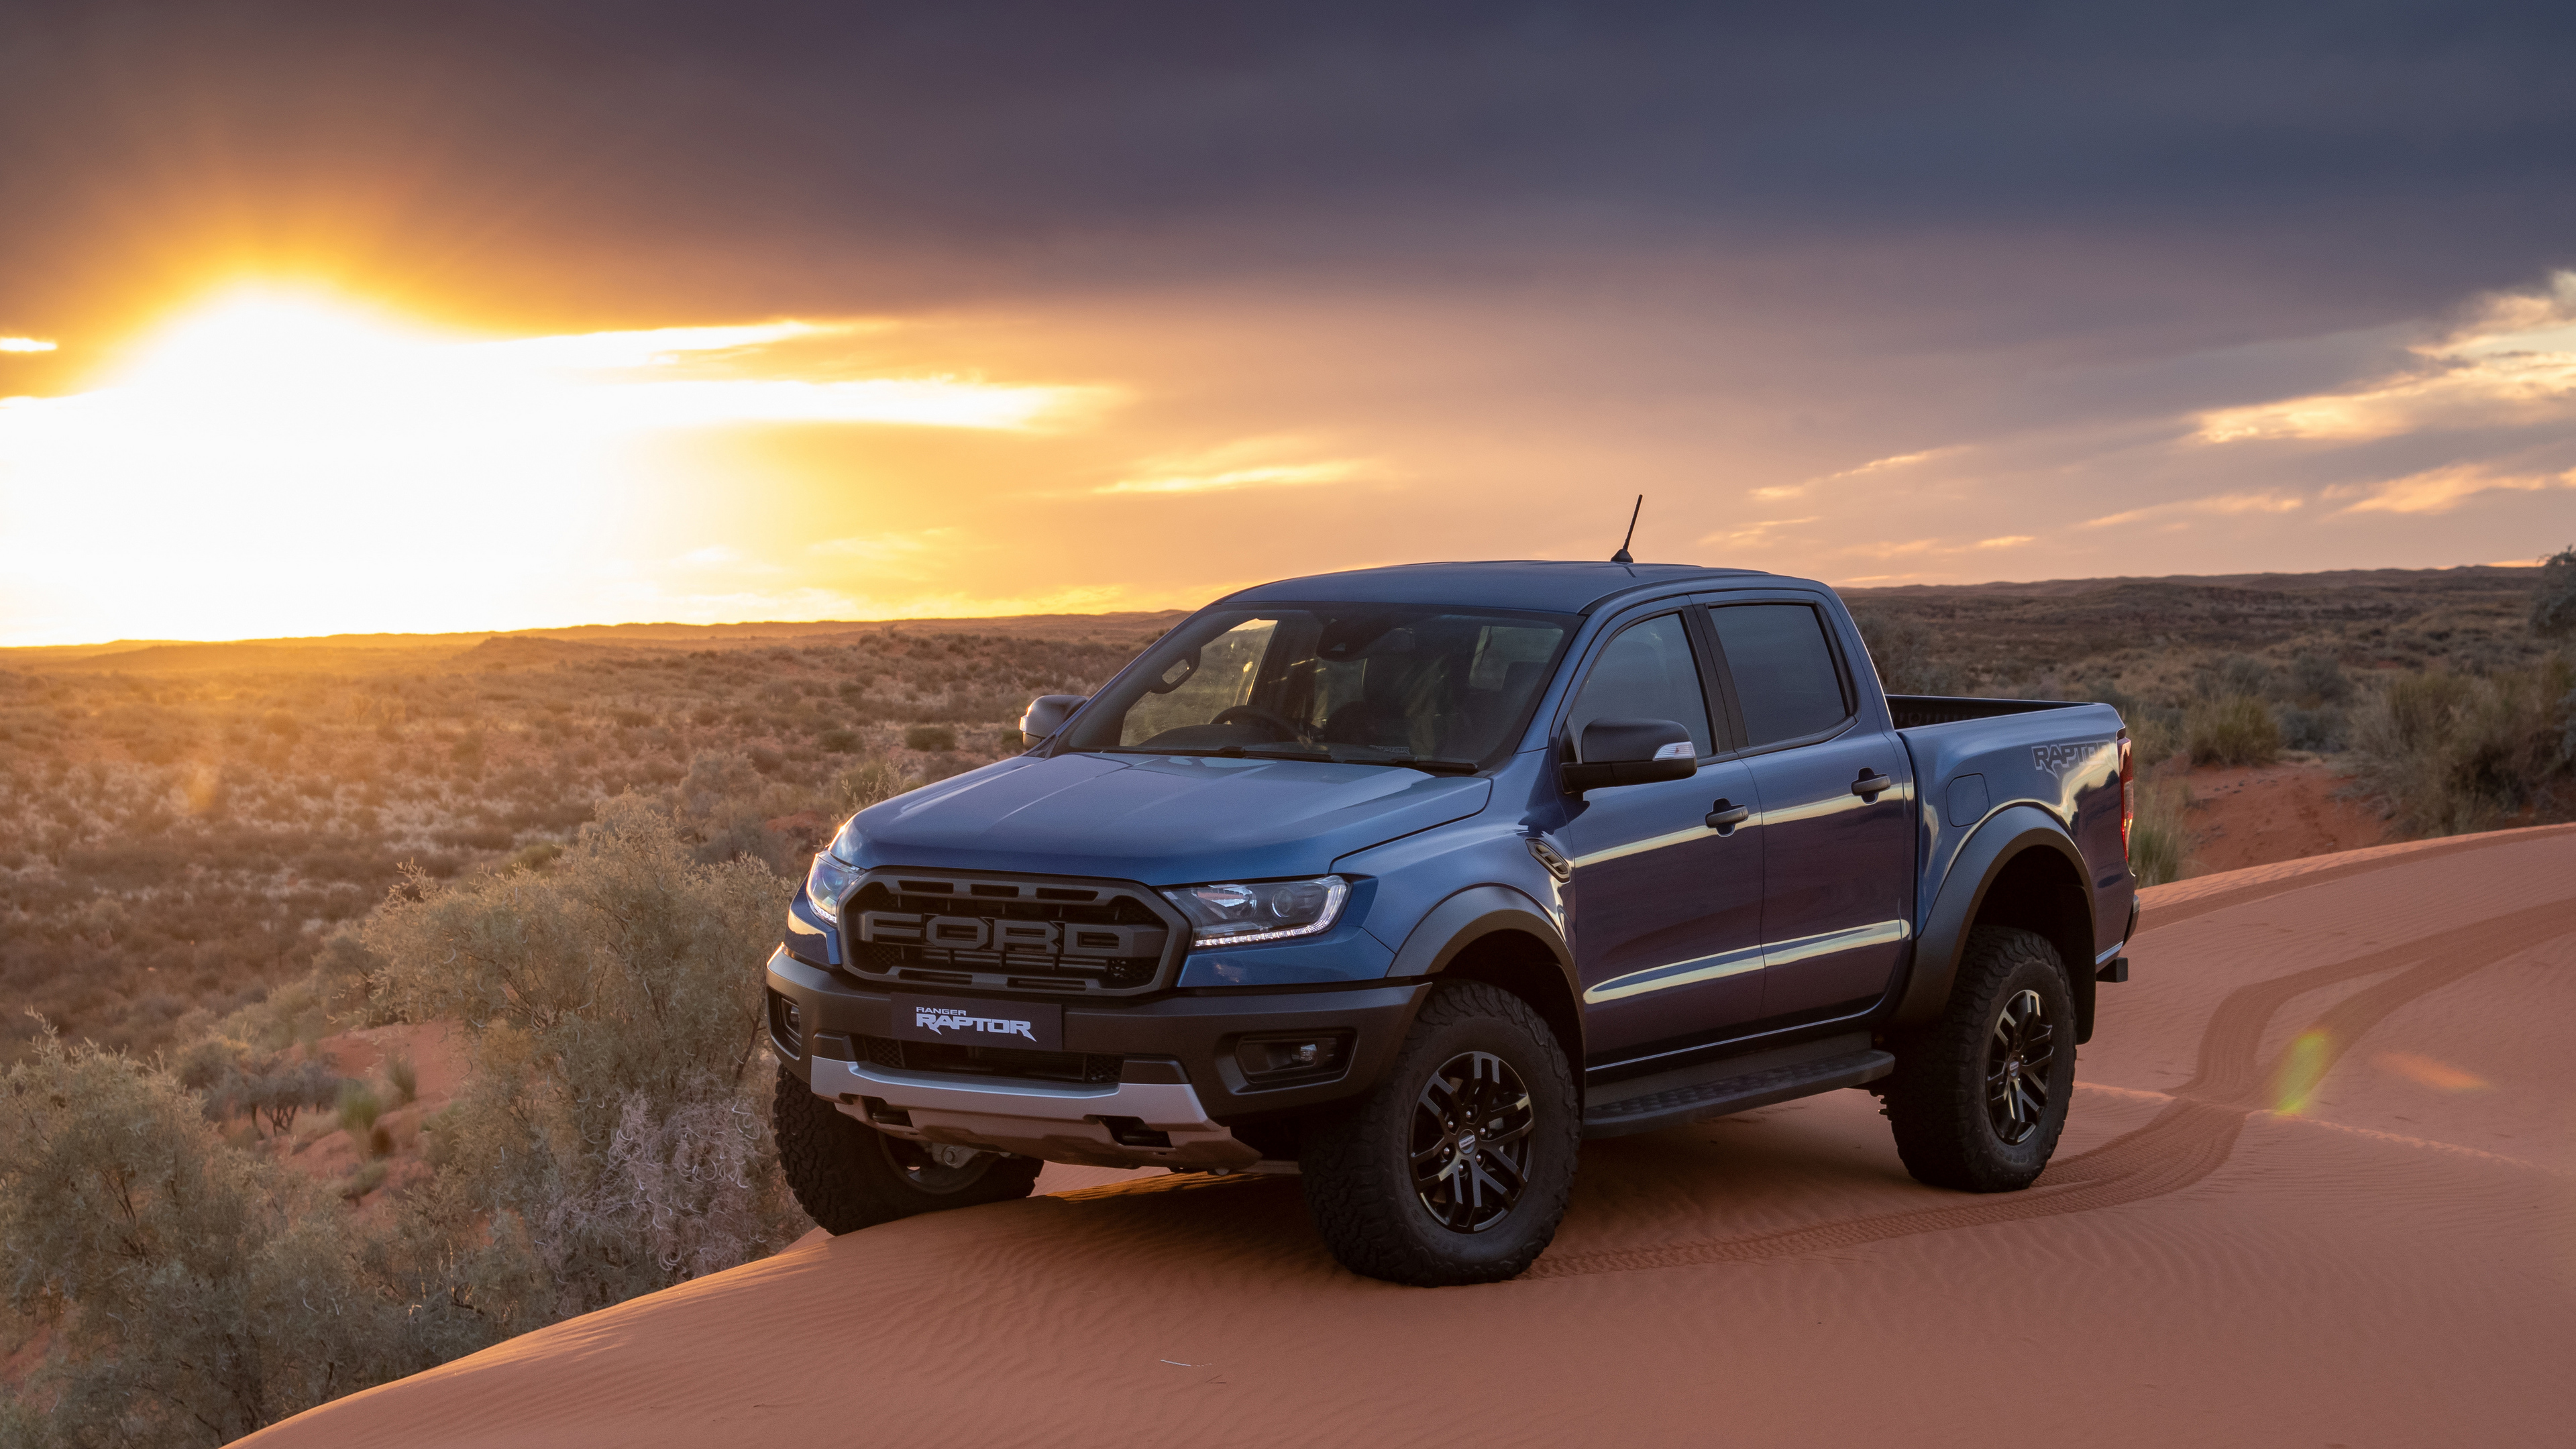 ford ranger raptor 2019 4k 1560534085 - Ford Ranger Raptor 2019 4k - truck wallpapers, hd-wallpapers, ford wallpapers, ford raptor wallpapers, ford ranger raptor wallpapers, cars wallpapers, 4k-wallpapers, 2019 cars wallpapers